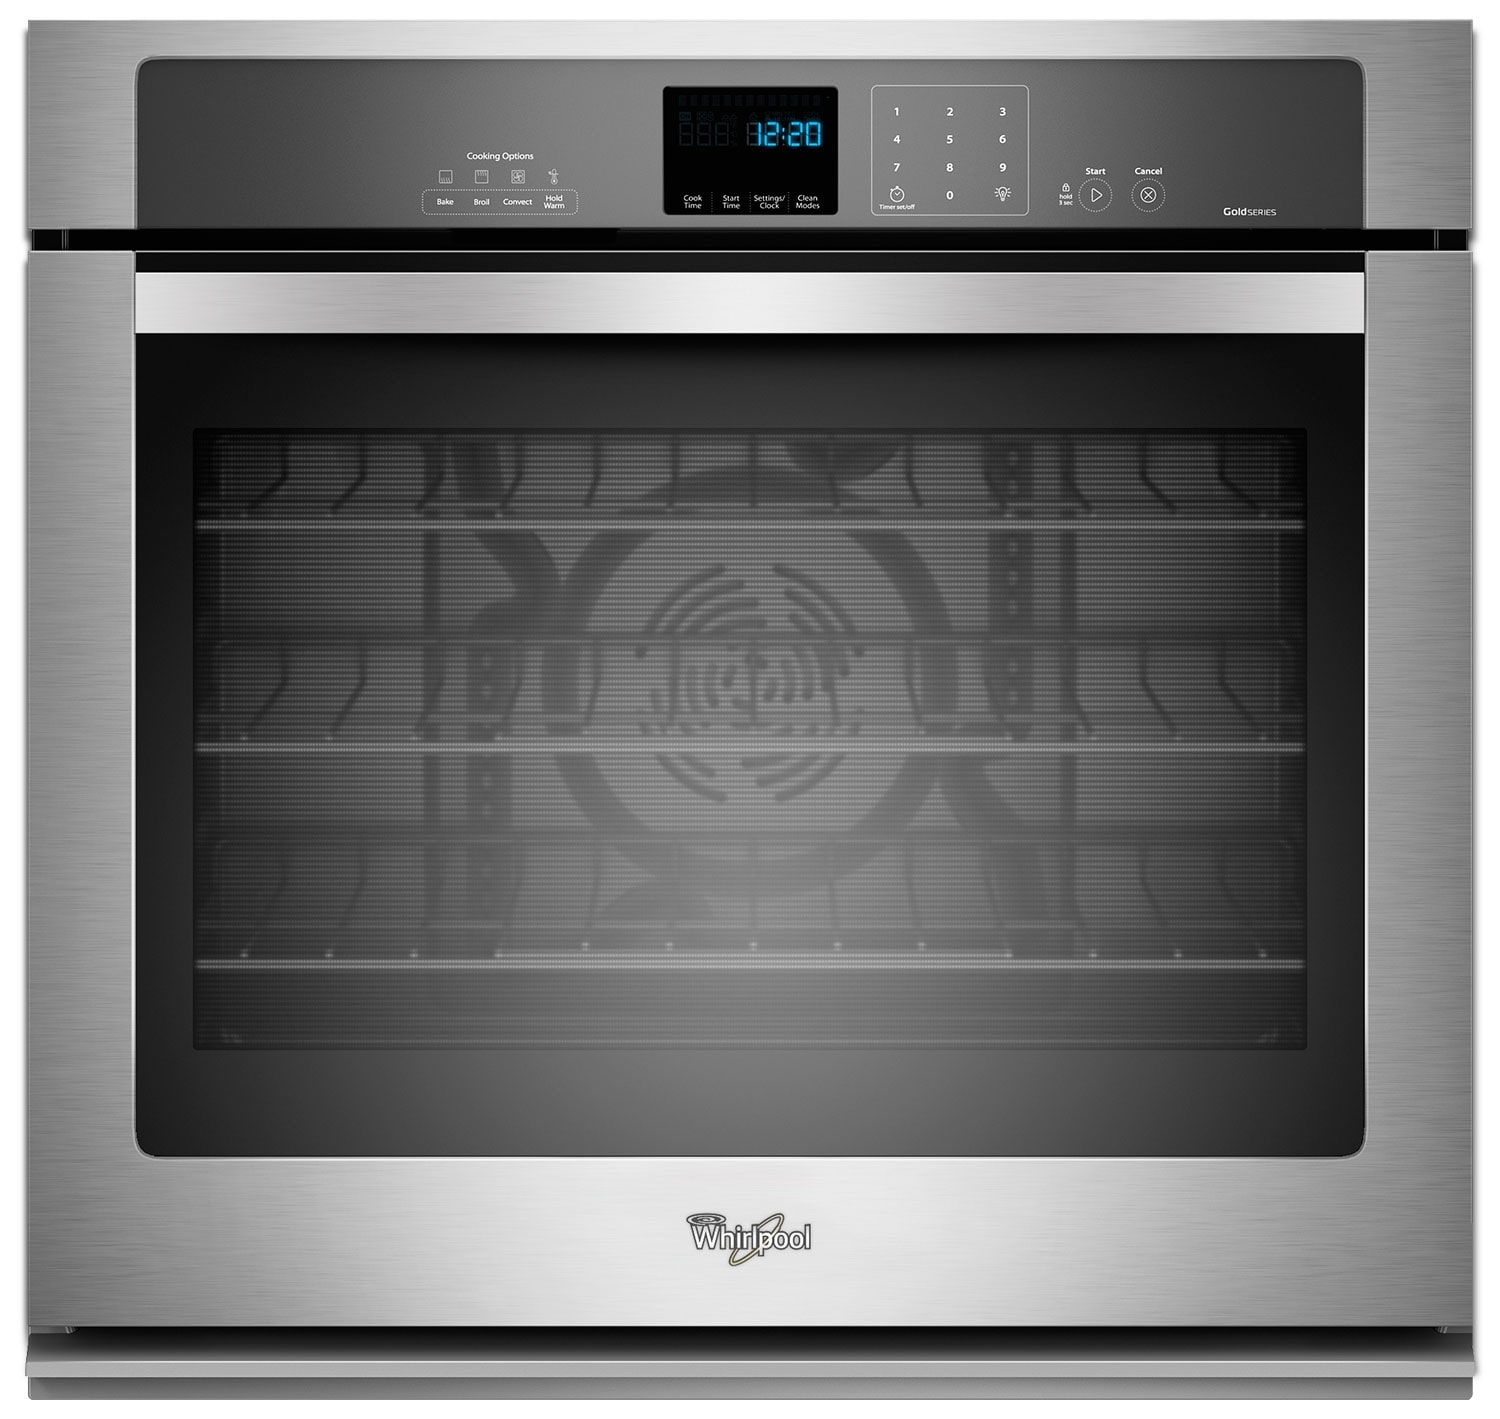 Whirlpool Stainless Steel Convection Wall Oven (5.0 Cu. Ft.) - WOS92EC0AS